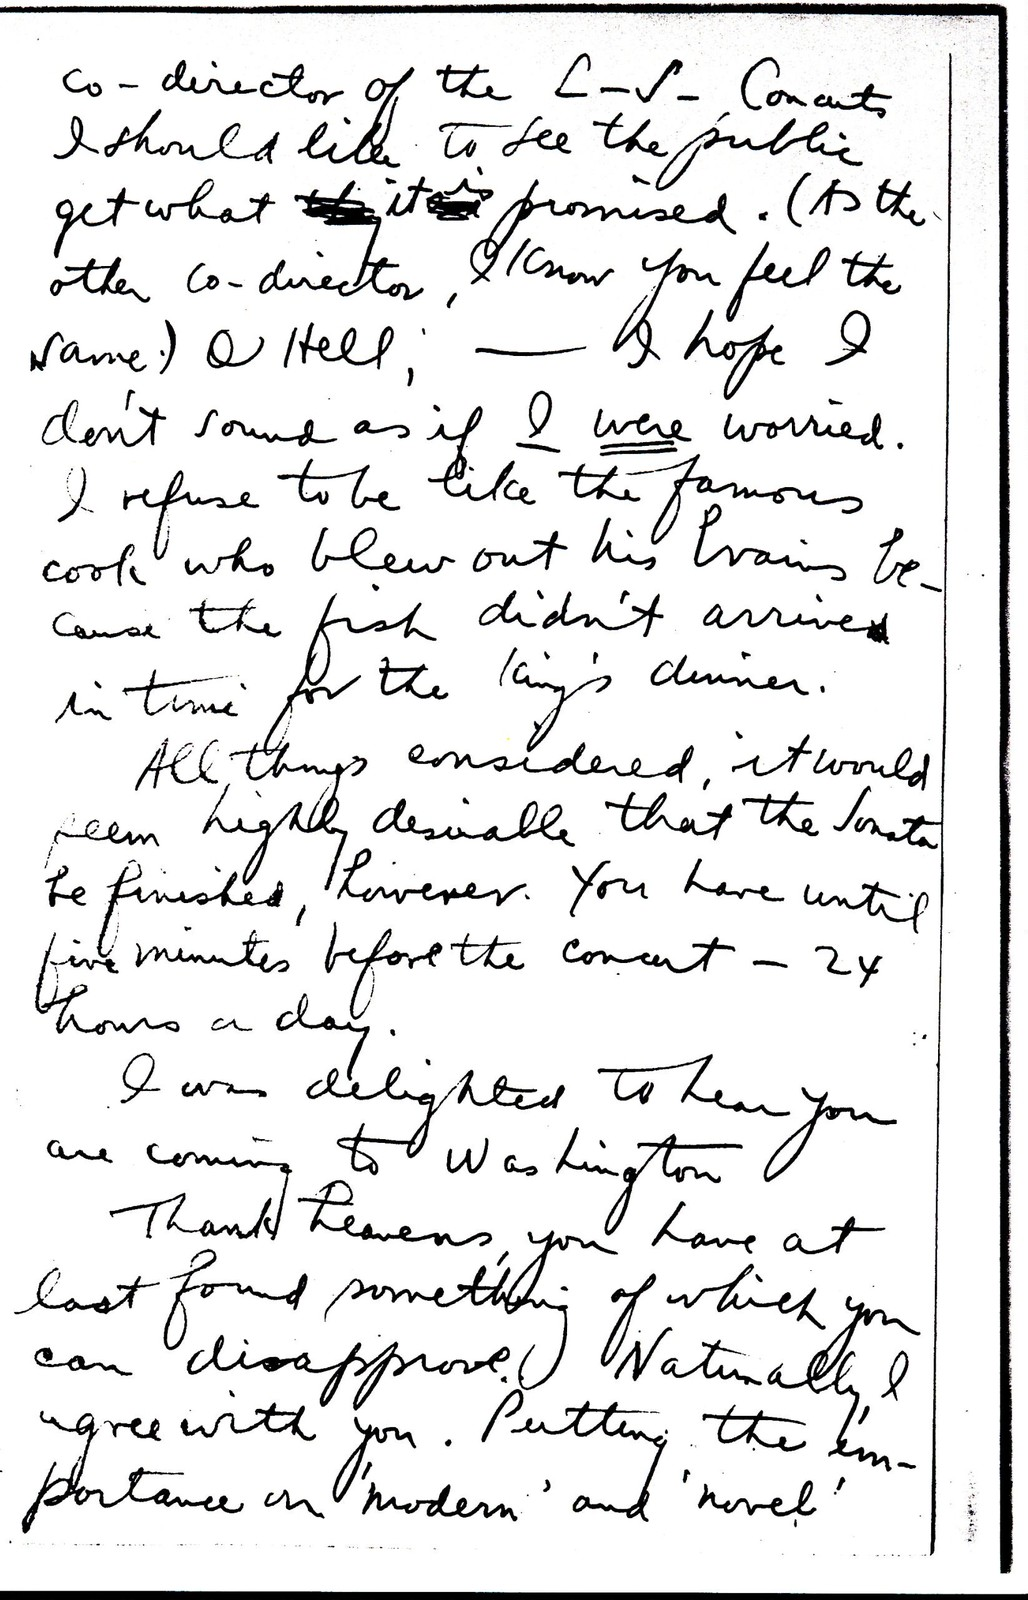 Letter from Aaron Copland to Roger Sessions, 1929.